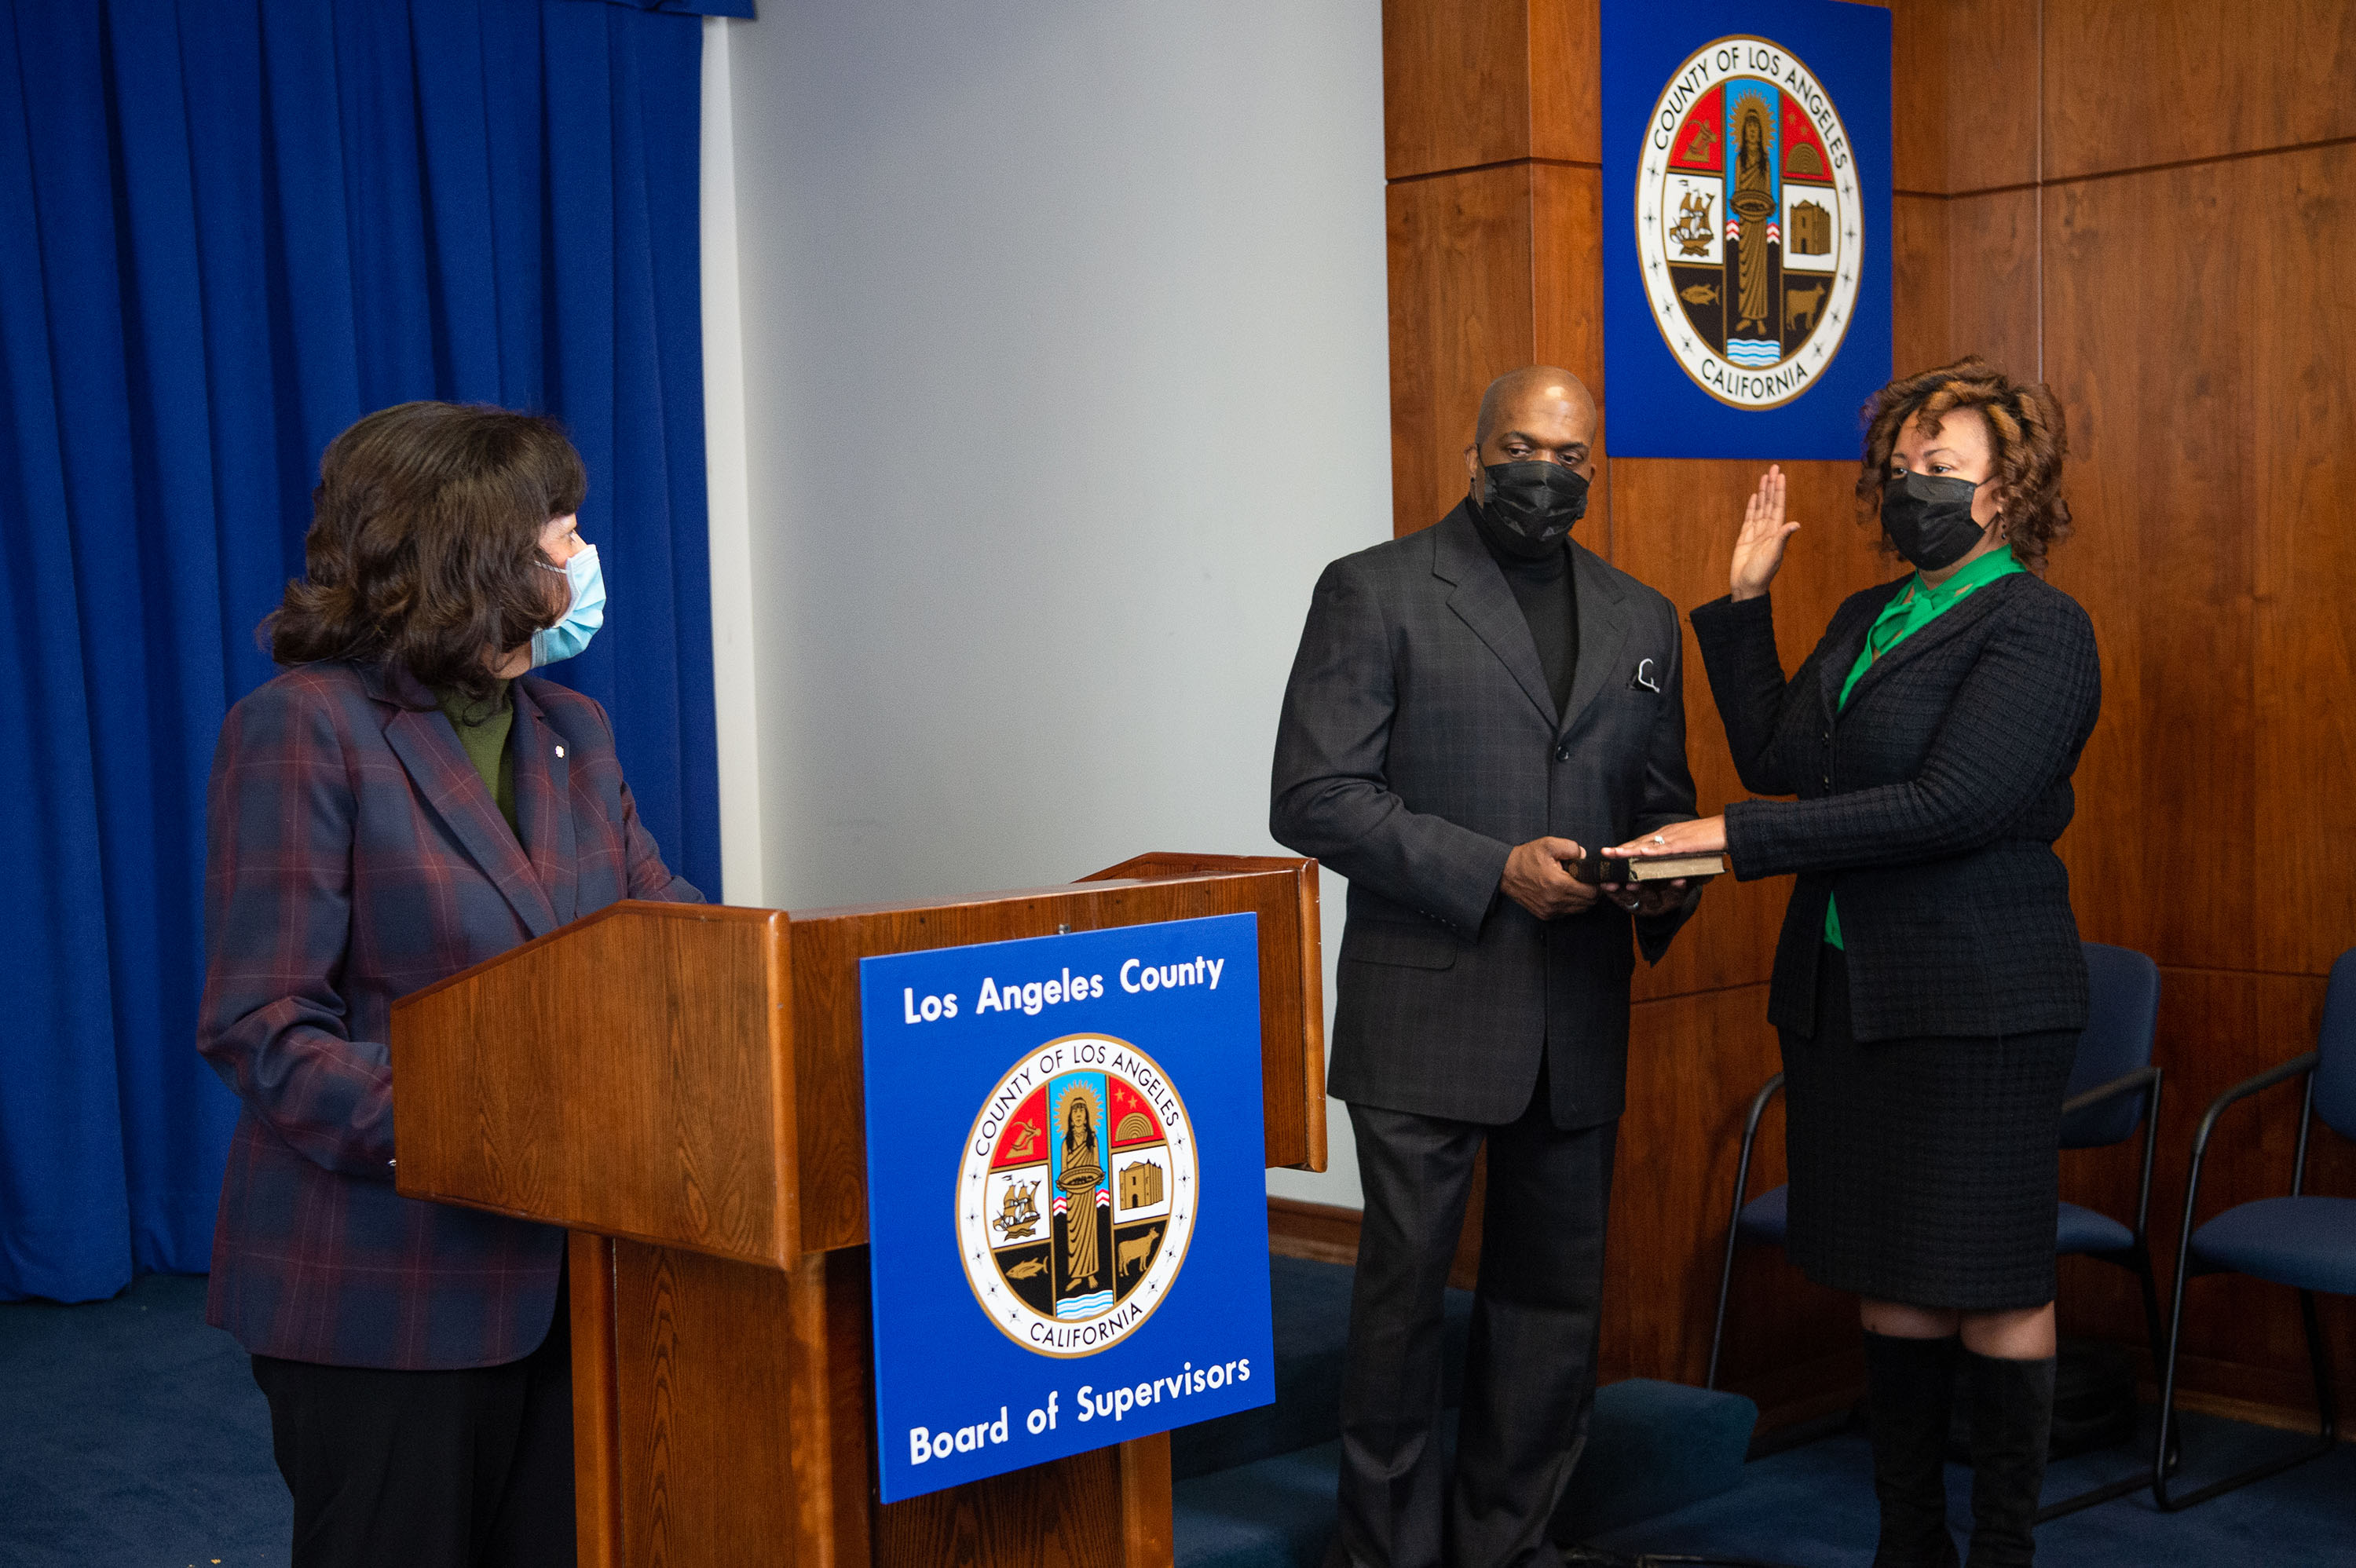 Executive Office<br><b>Jan. 6, 2021 - Fesia A Davenport CEO Oath of Office </b><br> <i>Photo by Bryan Chan / Board of Supervisors</i>